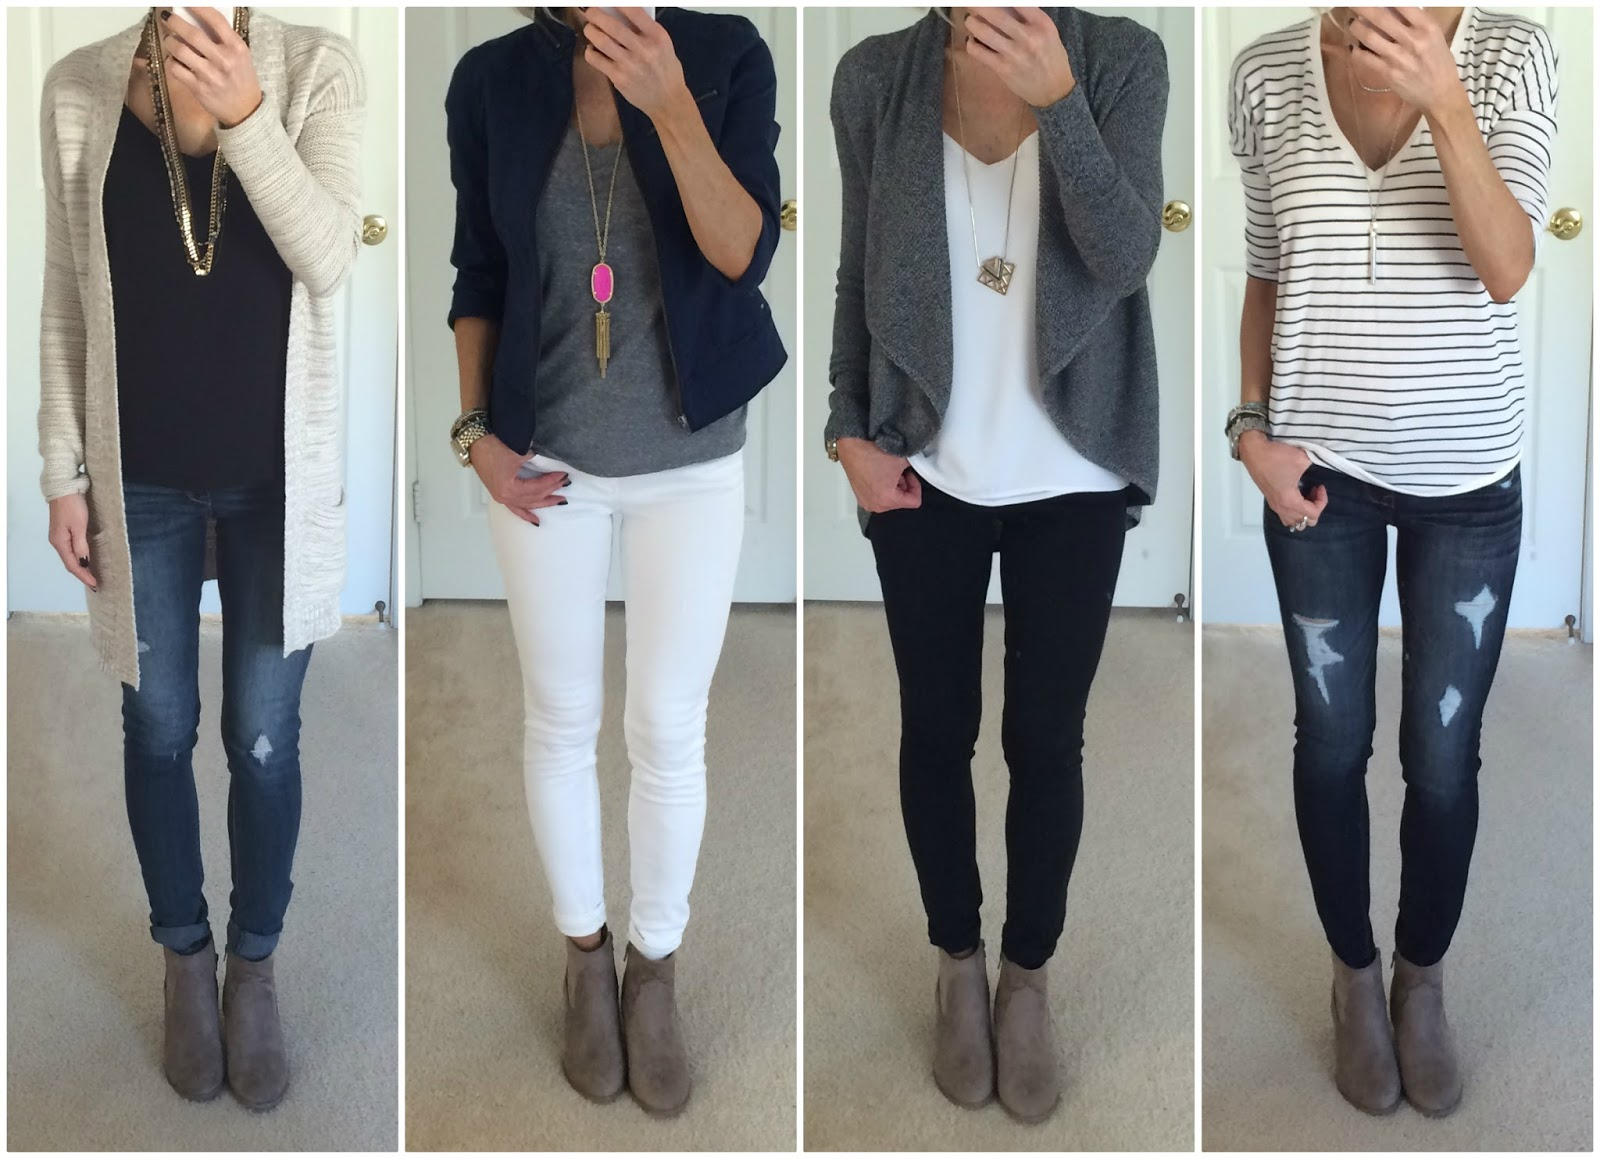 Outfits On The Daily 1/29/16 | On The Daily EXPRESS